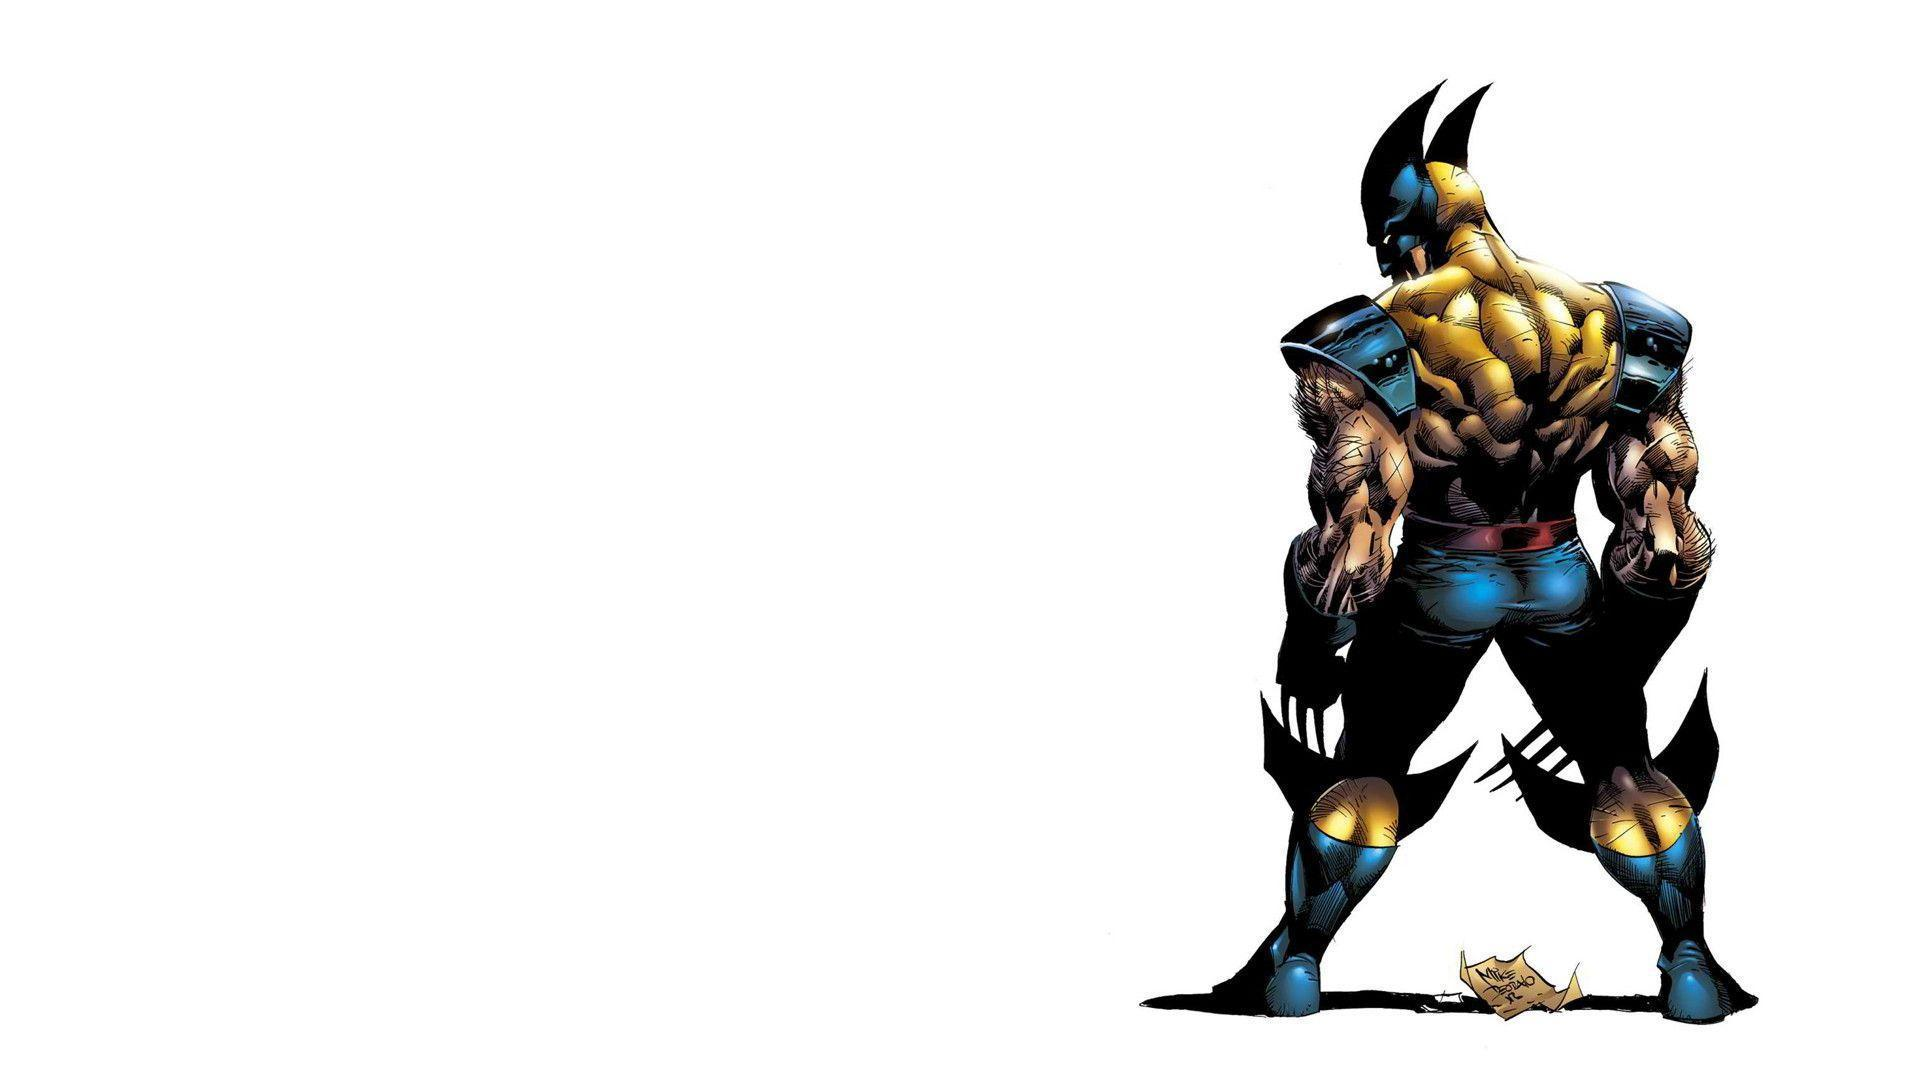 HD wolverine wallpapers hd / Wallpapers Database